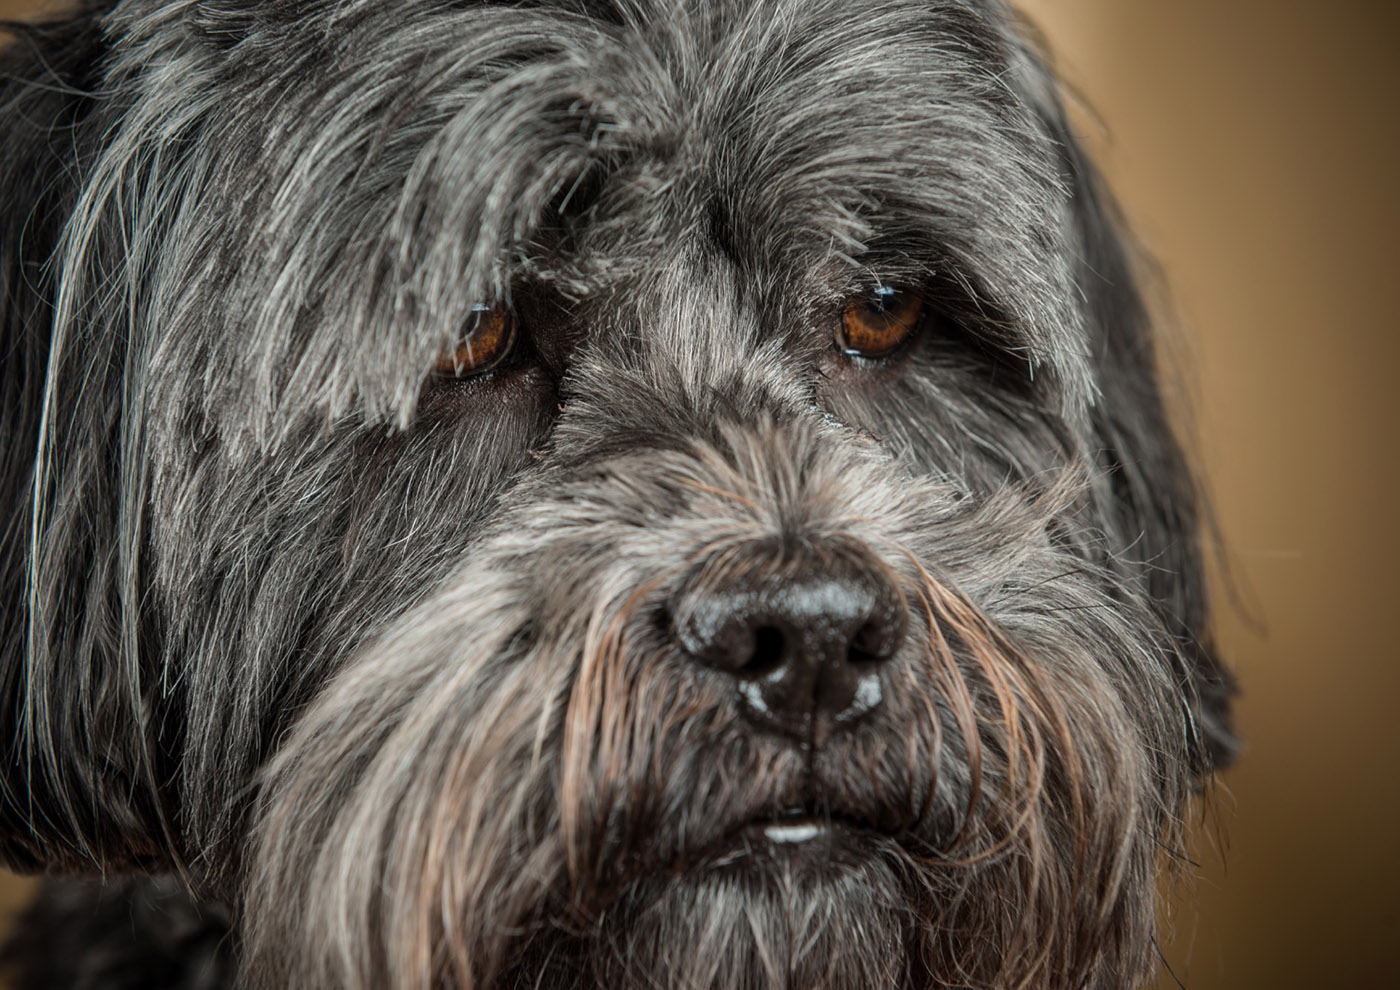 Dog Portrait Day 30th of May 2018